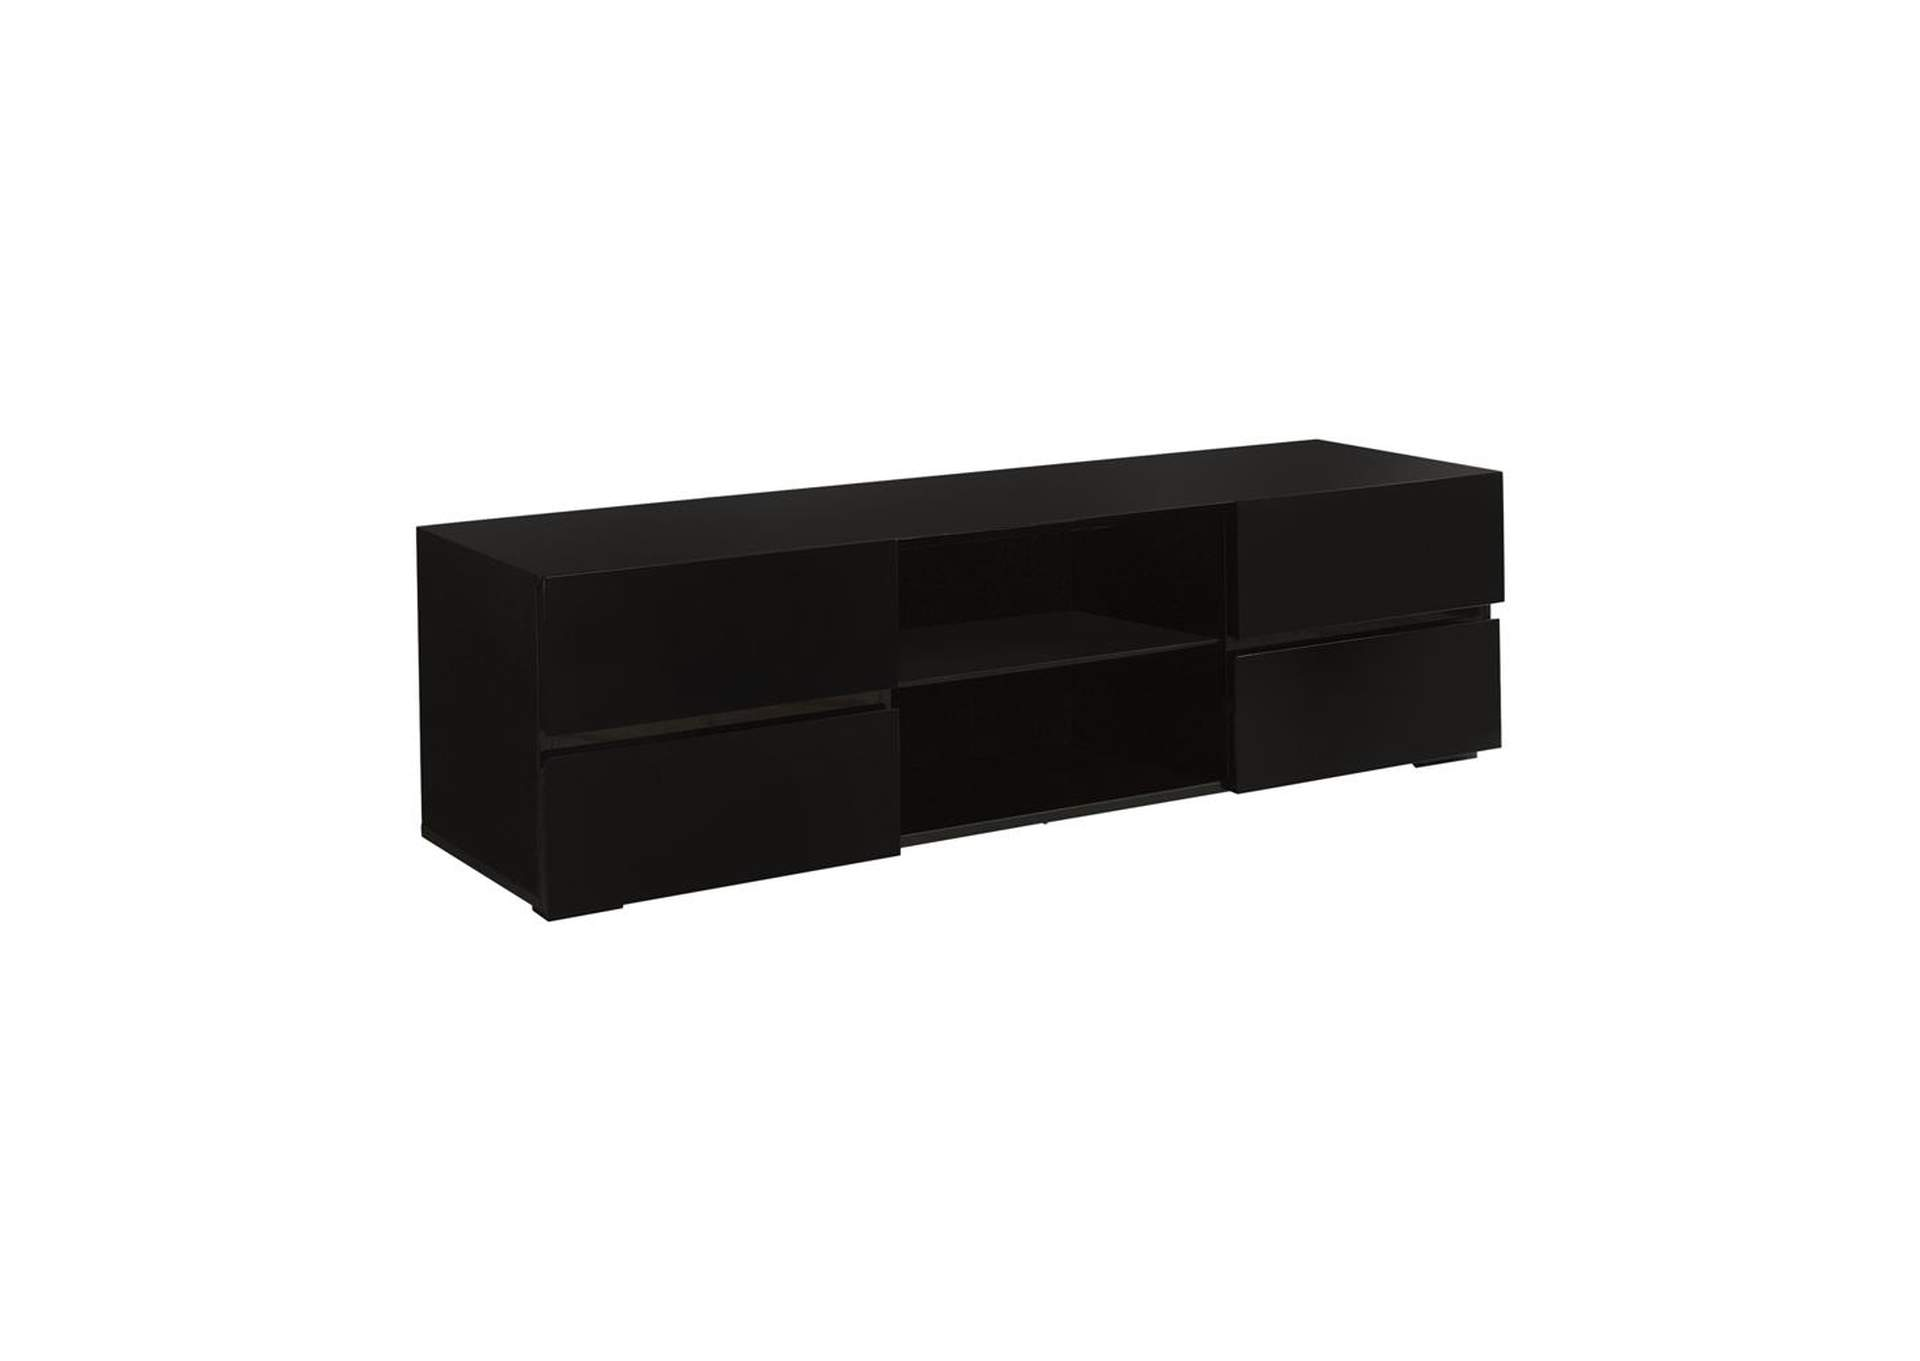 Eerie Black Contemporary Glossy Black TV Console,Coaster Furniture